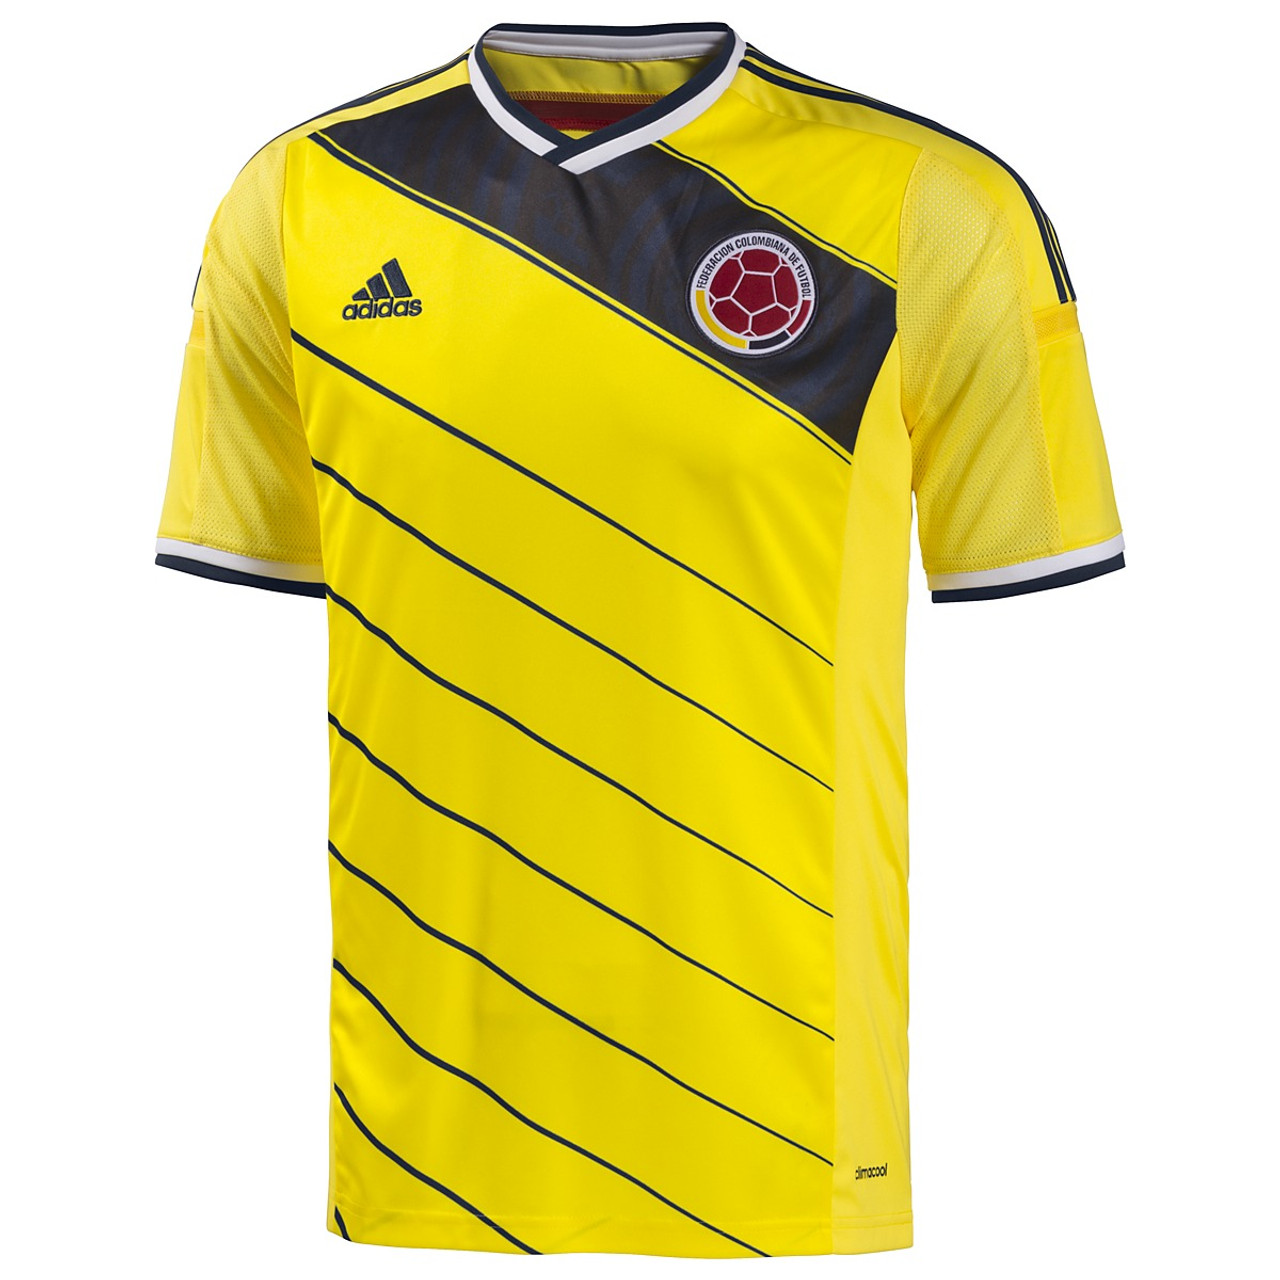 ADIDAS COLOMBIA 2014 HOME JERSEY